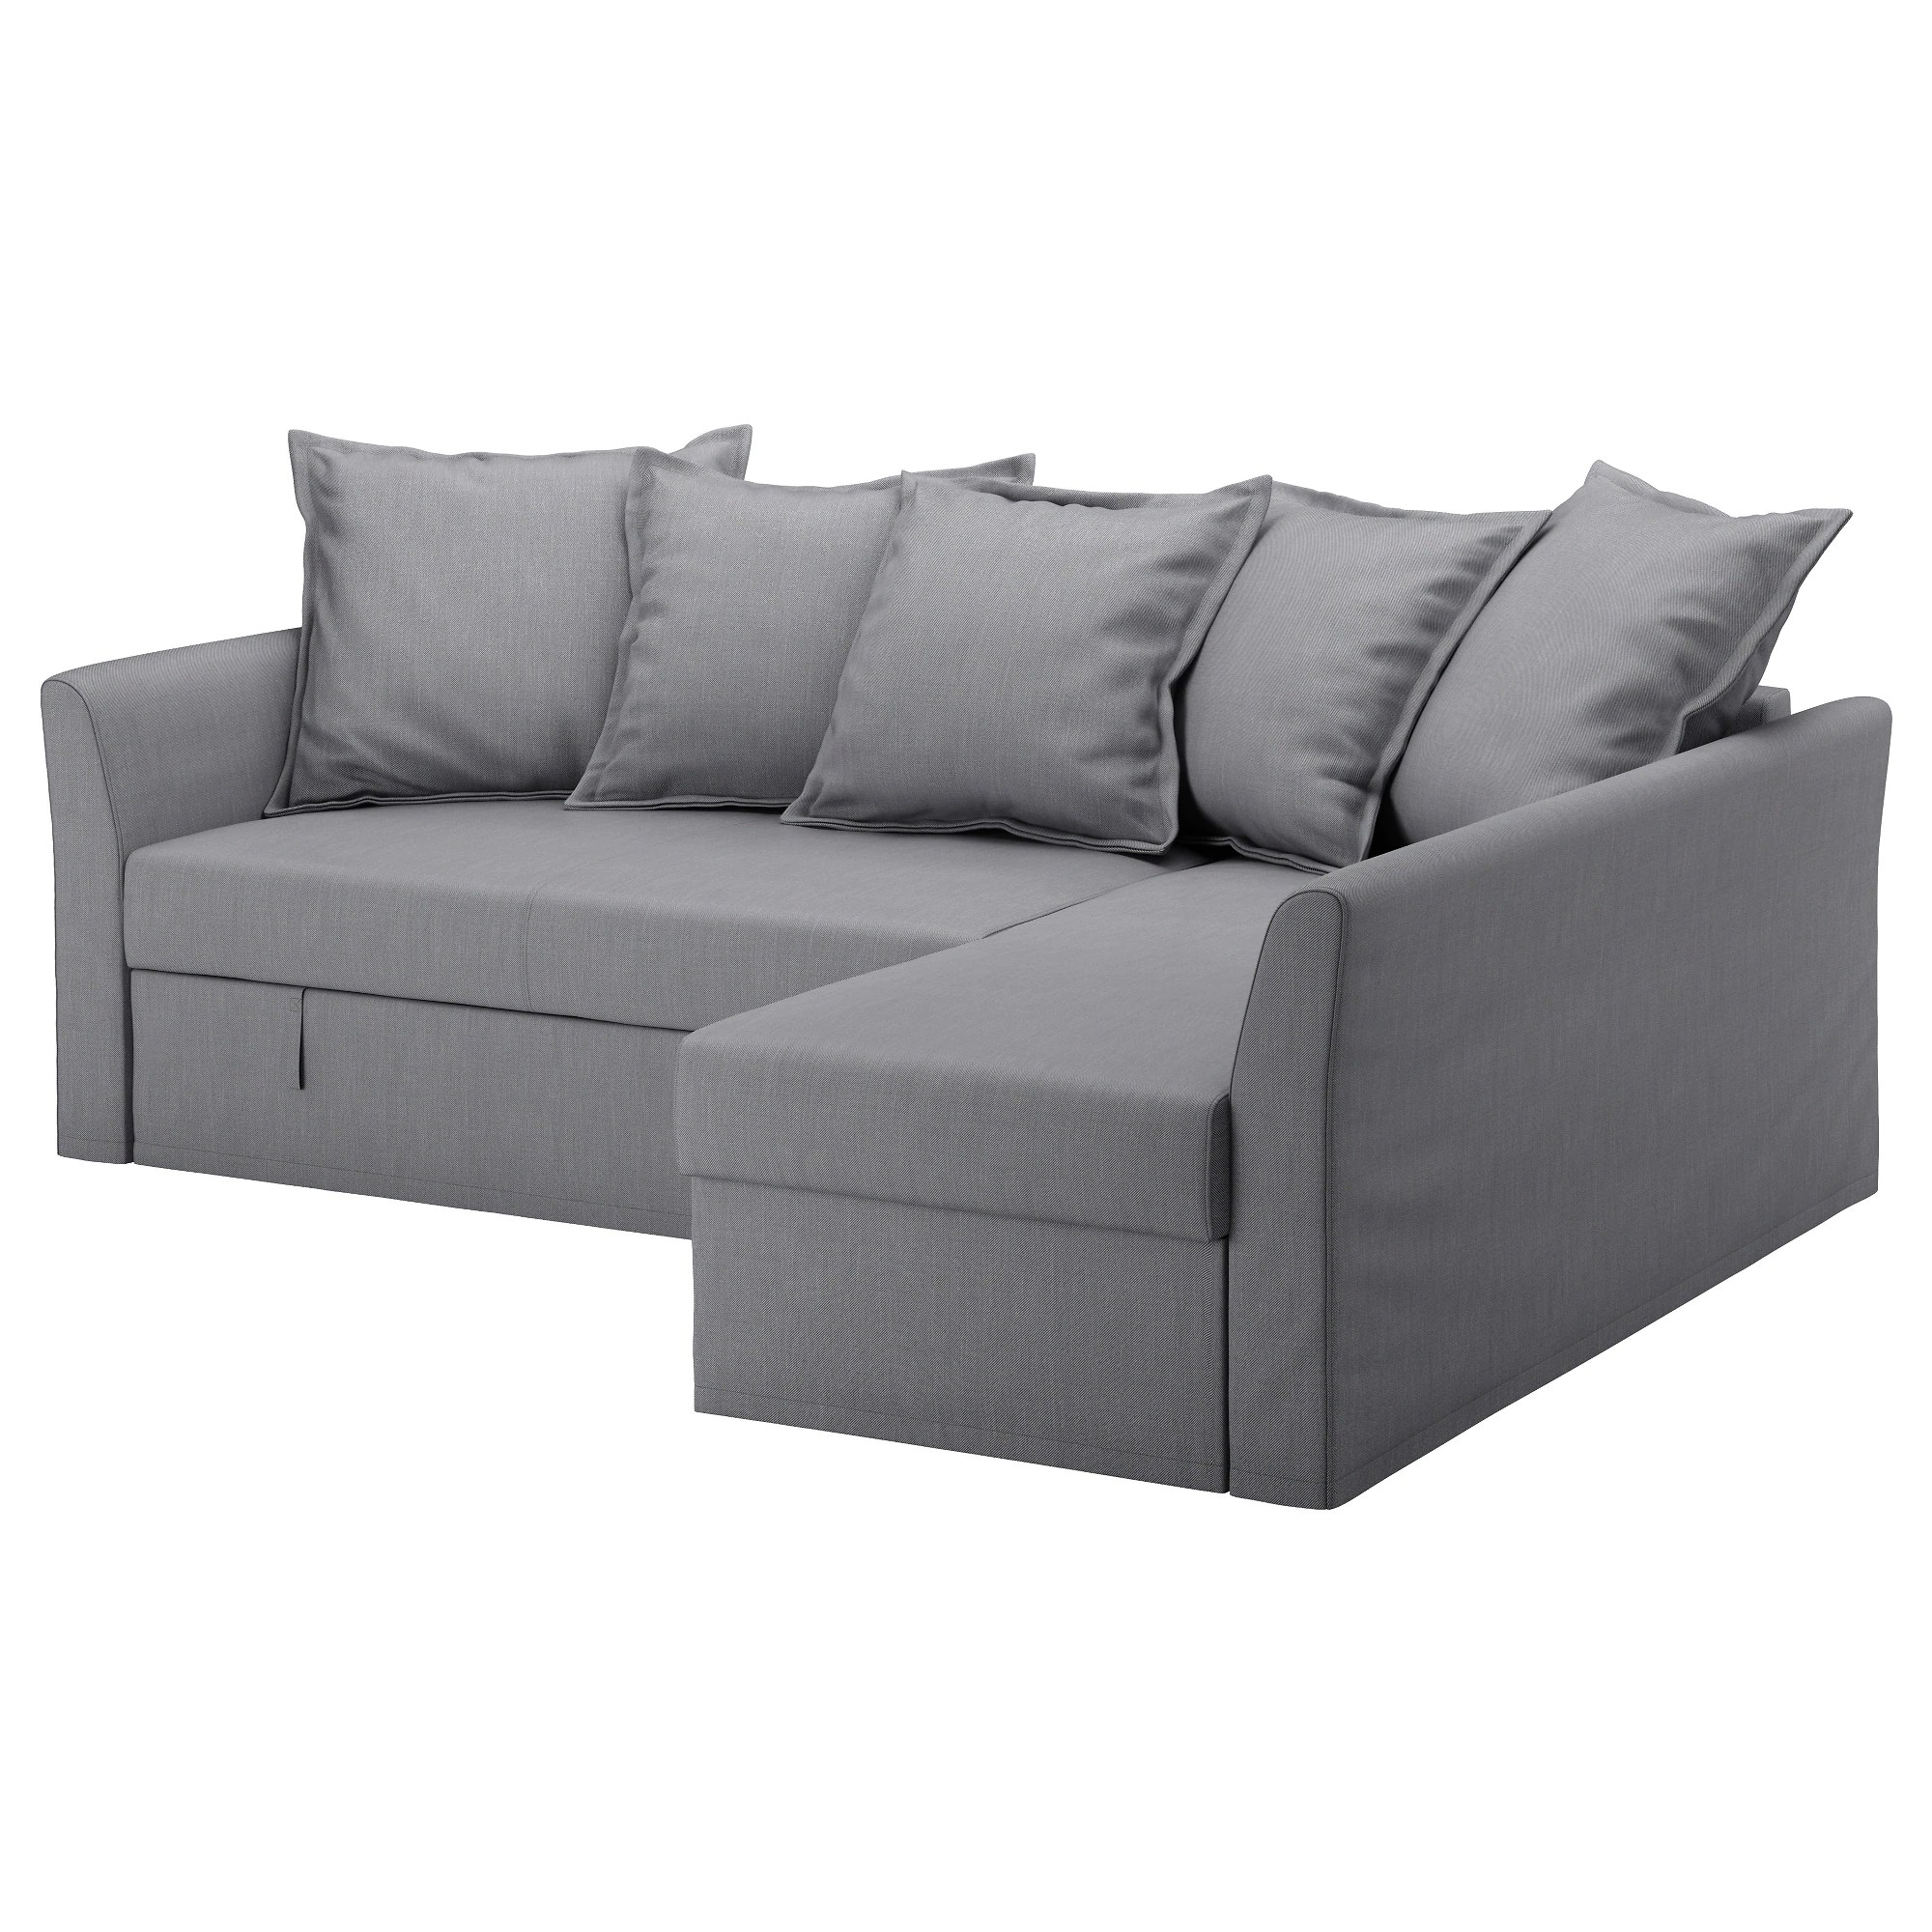 Ikea Sofa Bed Holmsund Corner Sofa Bed Nordvalla Medium Gray